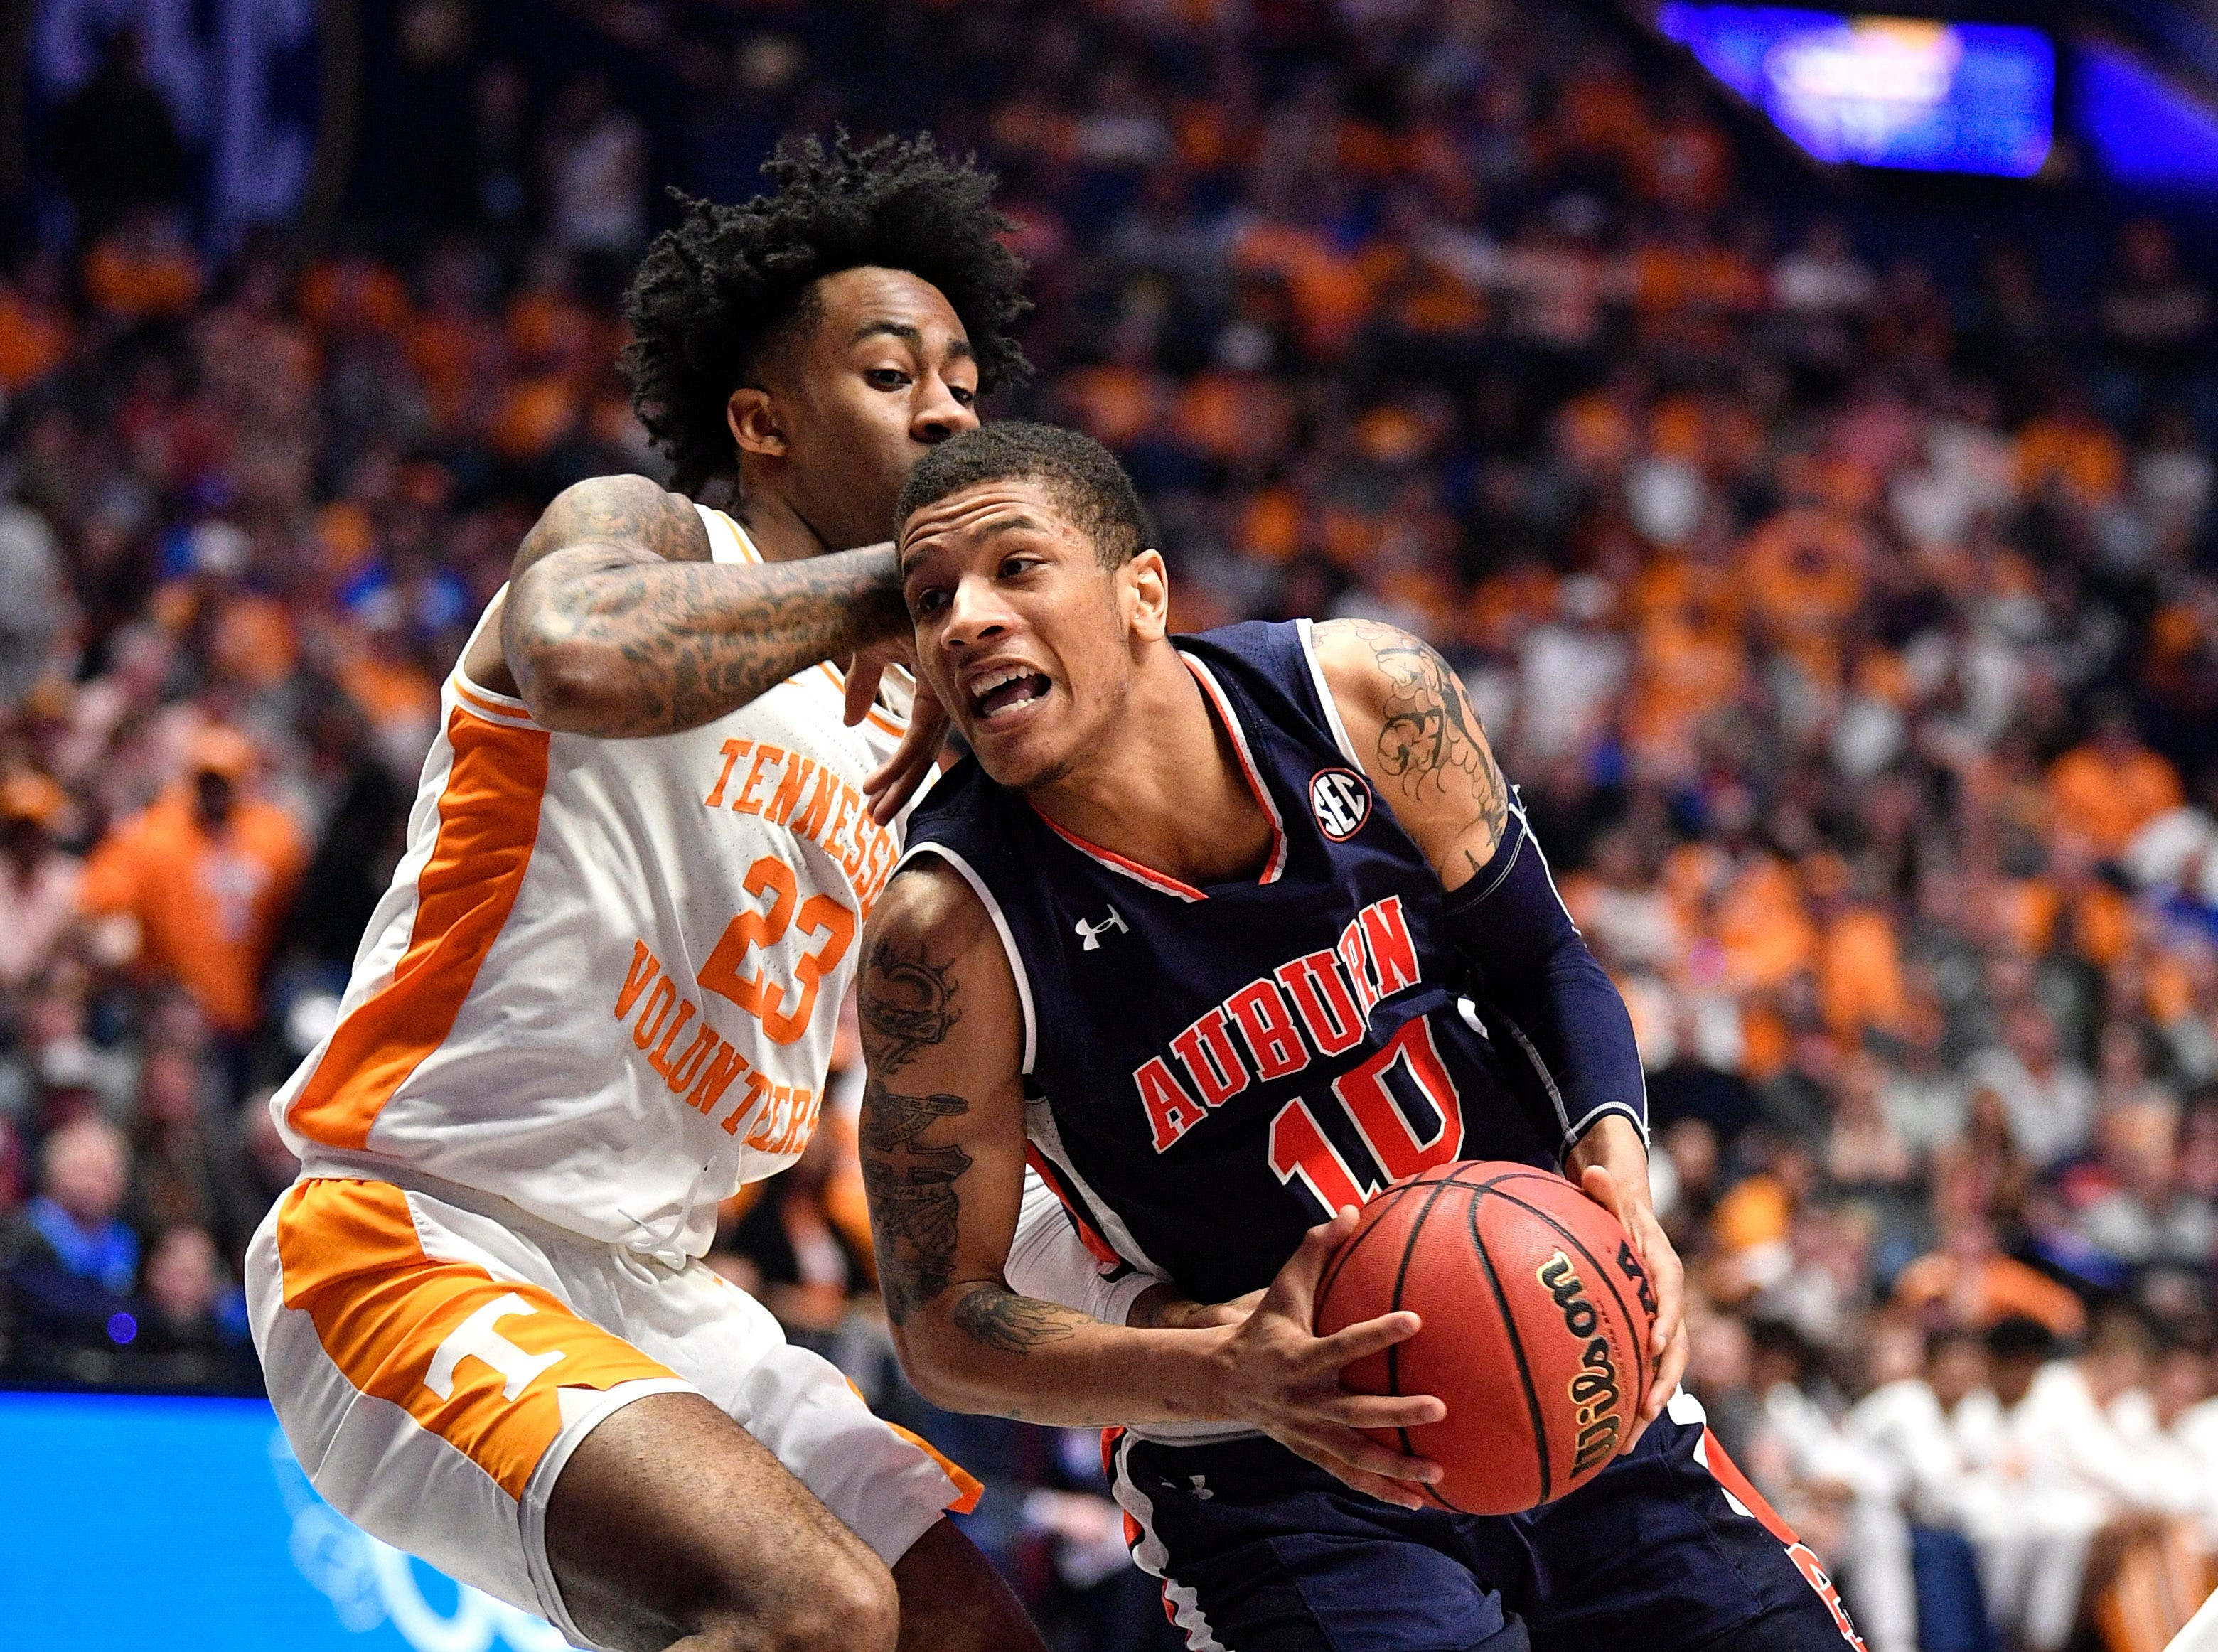 Auburn guard Samir Doughty (10) moves the ball defended by Tennessee guard Jordan Bowden (23) during the second half of the SEC Men's Basketball Tournament championship game at Bridgestone Arena in Nashville, Tenn., Sunday, March 17, 2019.